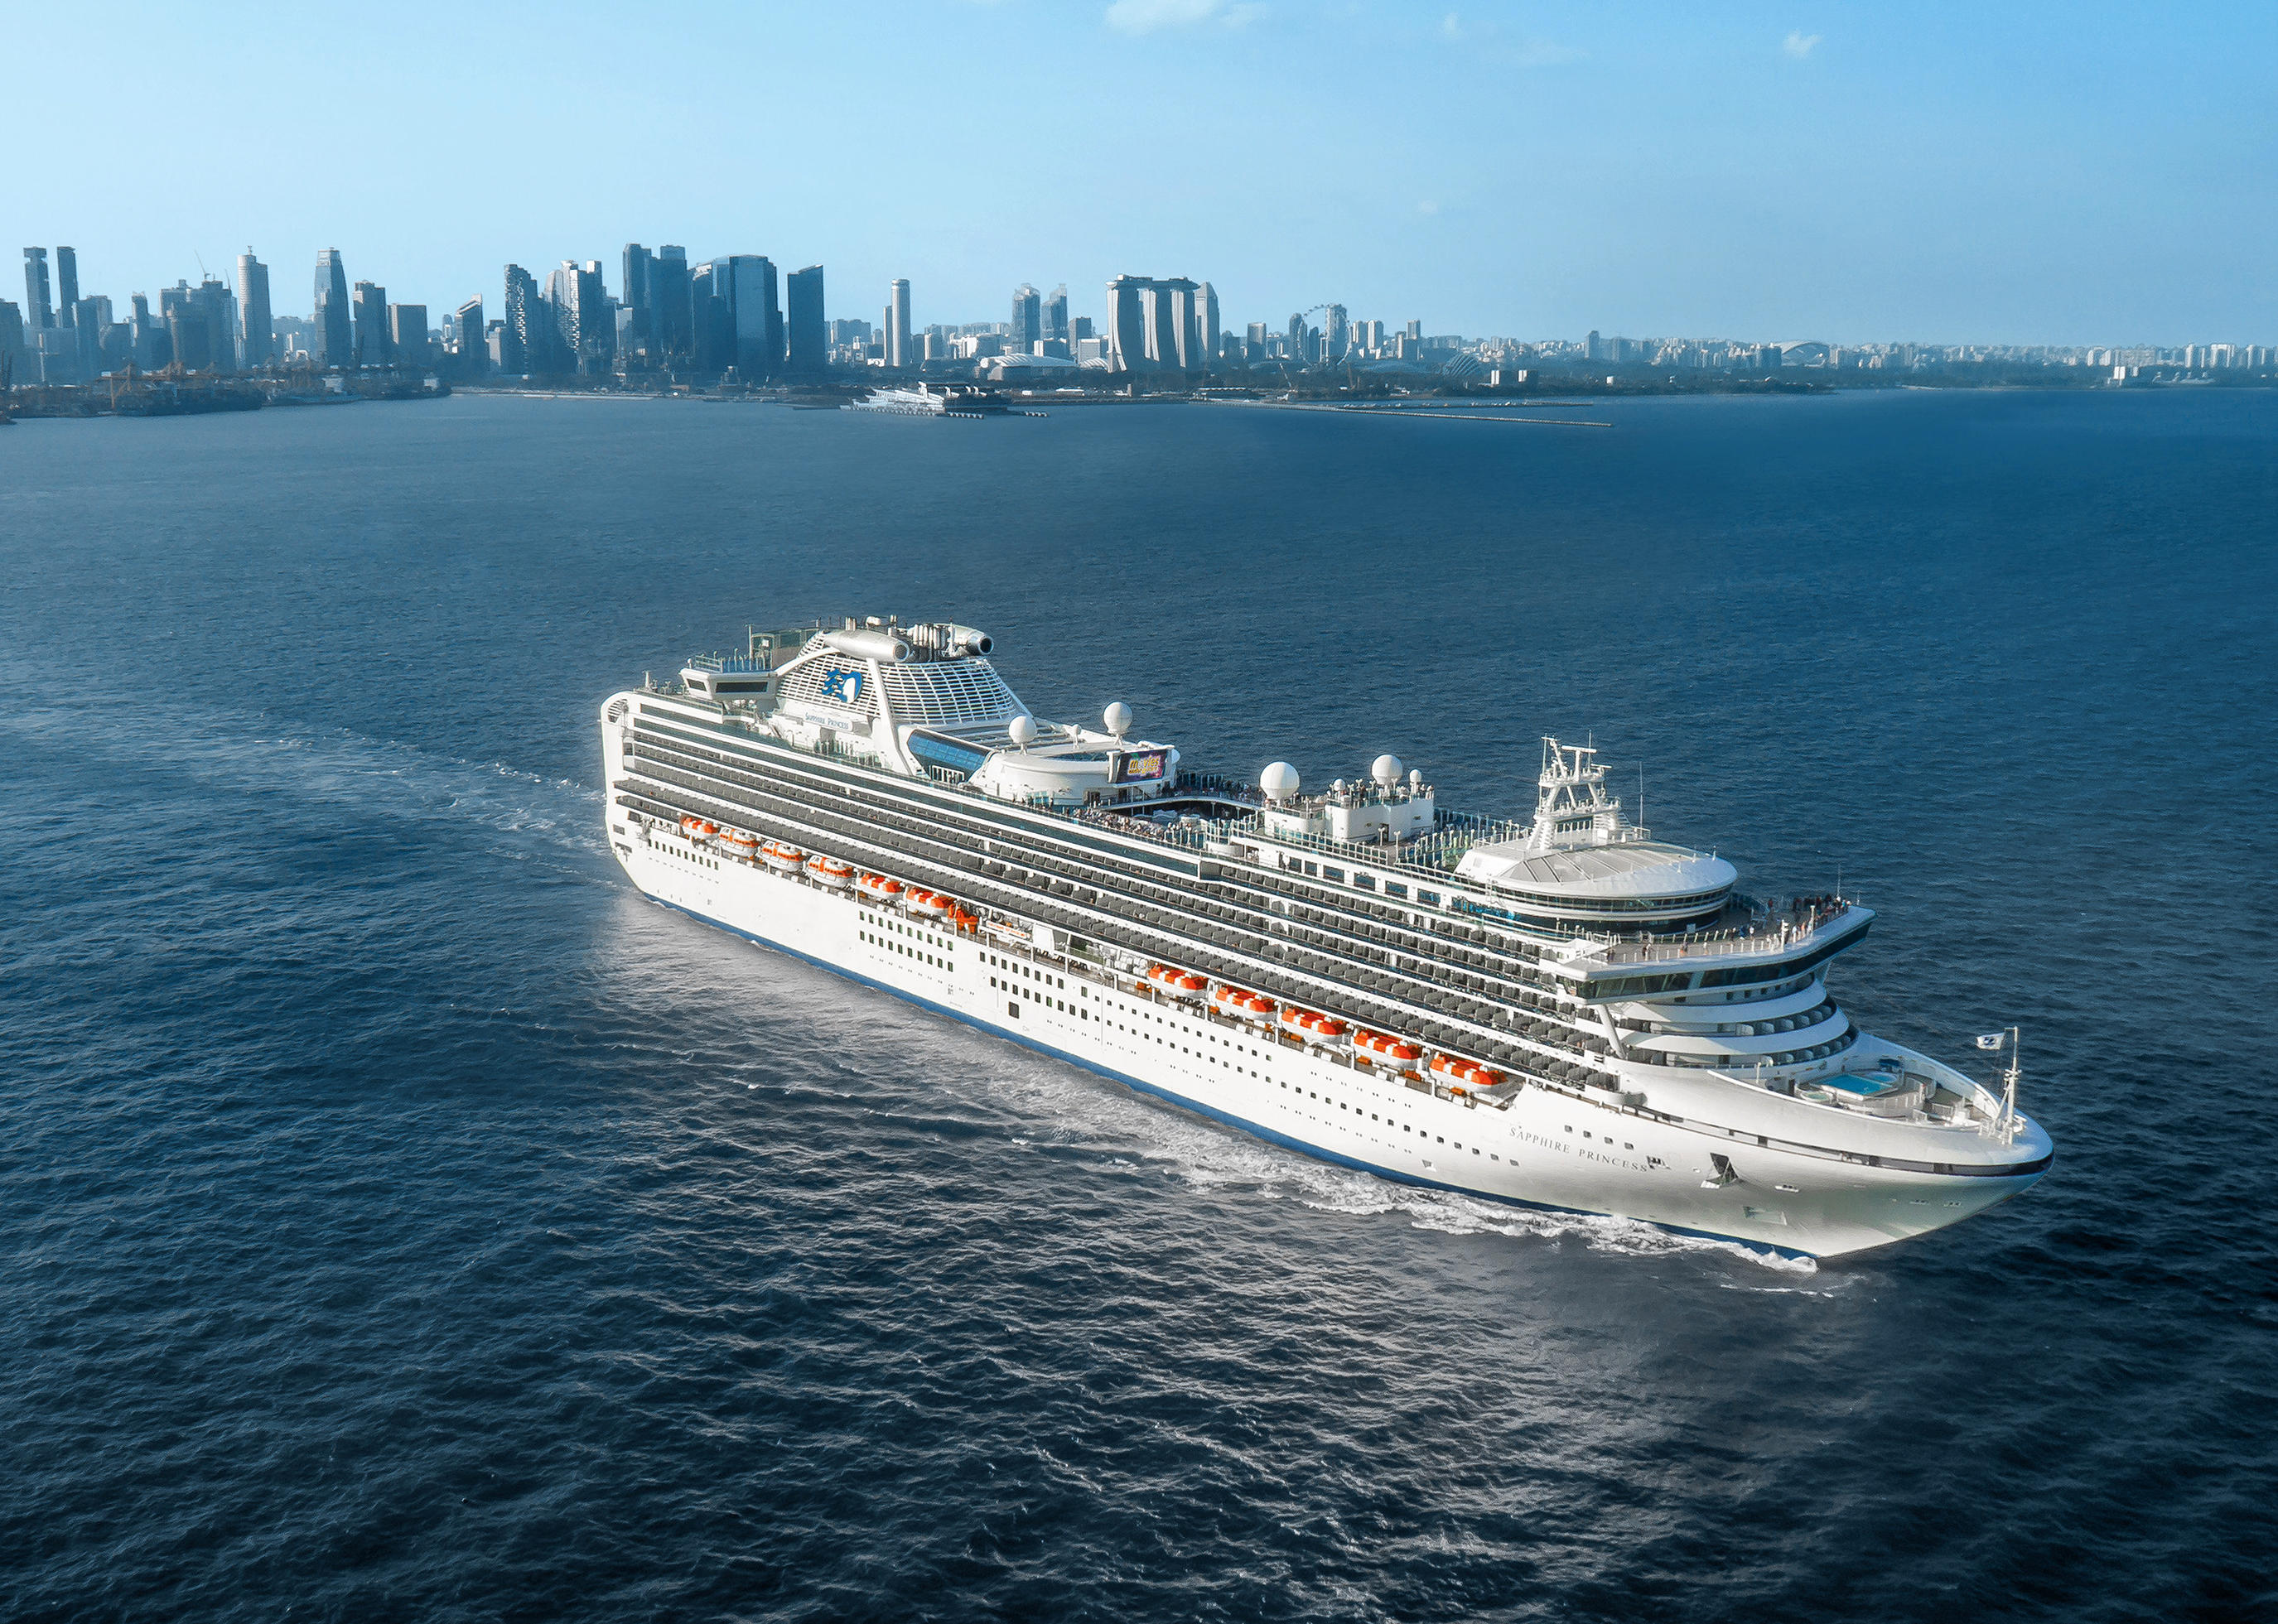 Princess Sapphire Princess Cruise Ship Reviews UPDATED - Guest entertainers wanted for cruise ships